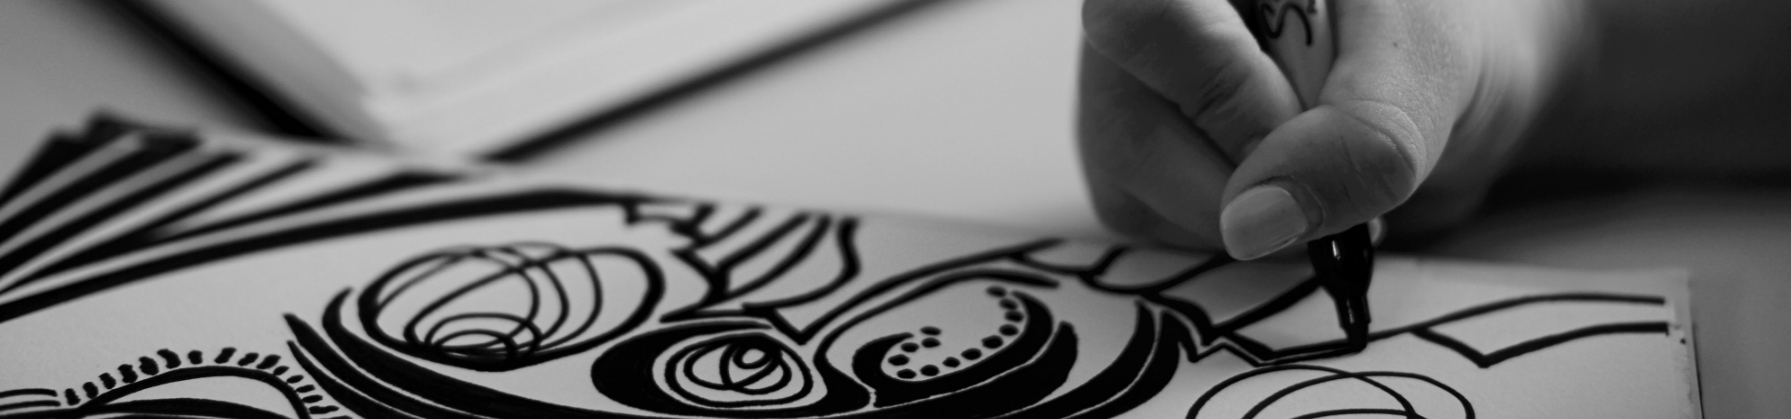 A hand is drawing a design on paper with a black sharpie marker.